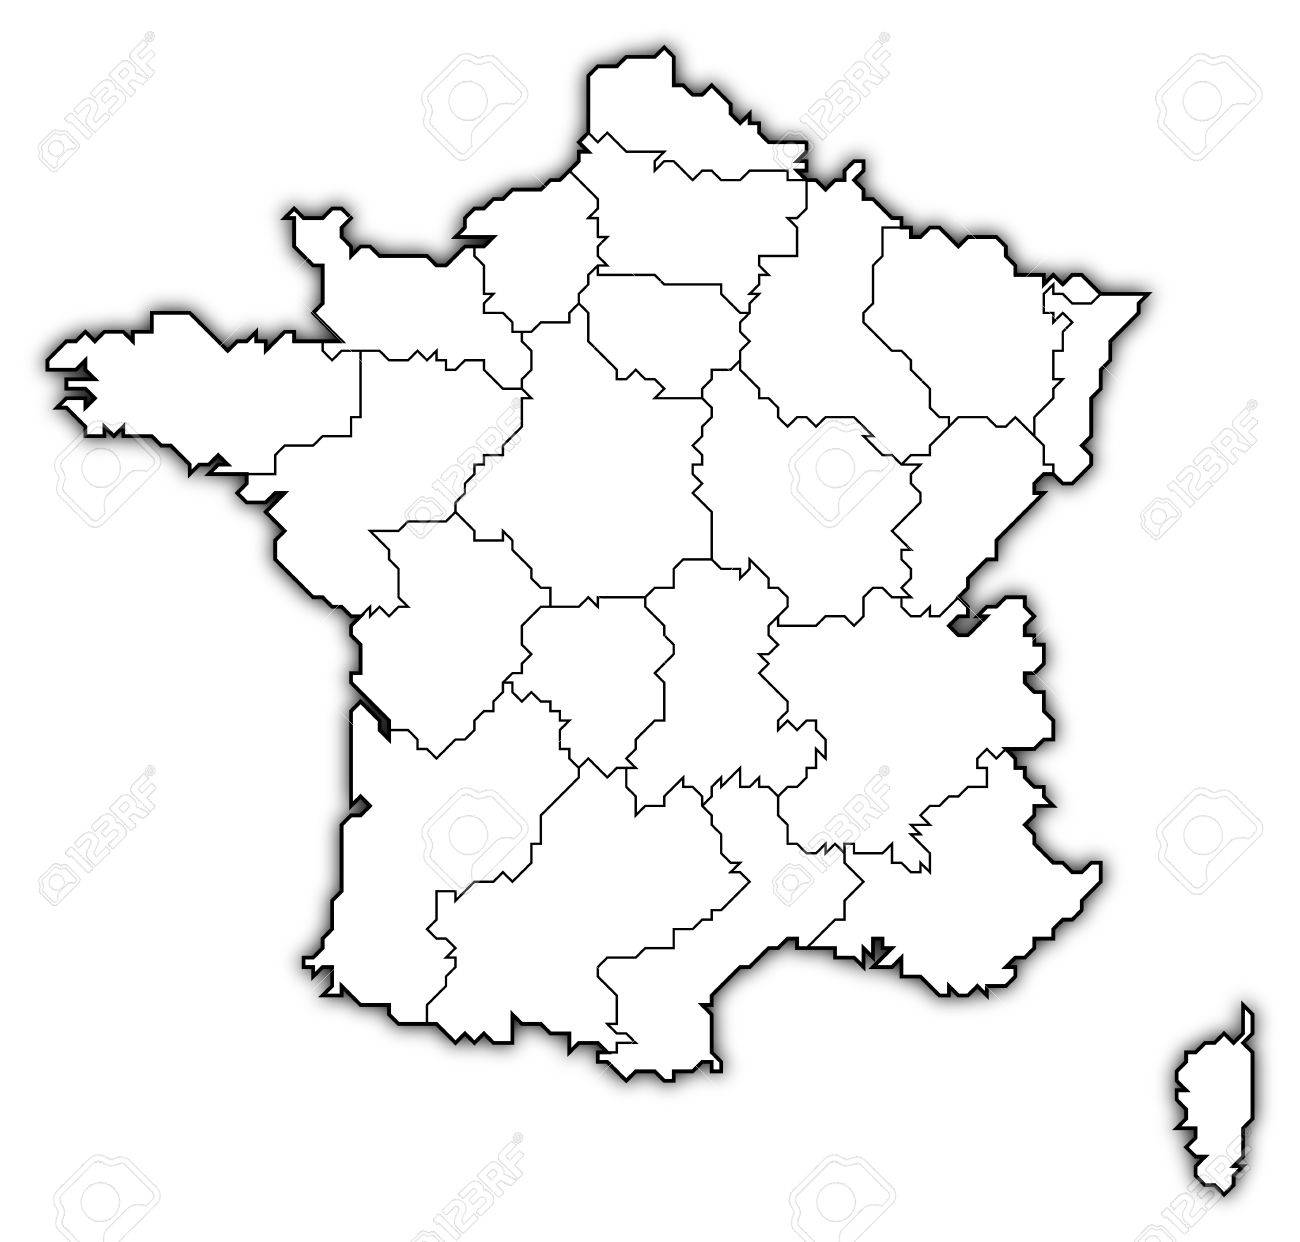 Map Of France Political.Political Map Of France With The Several Regions